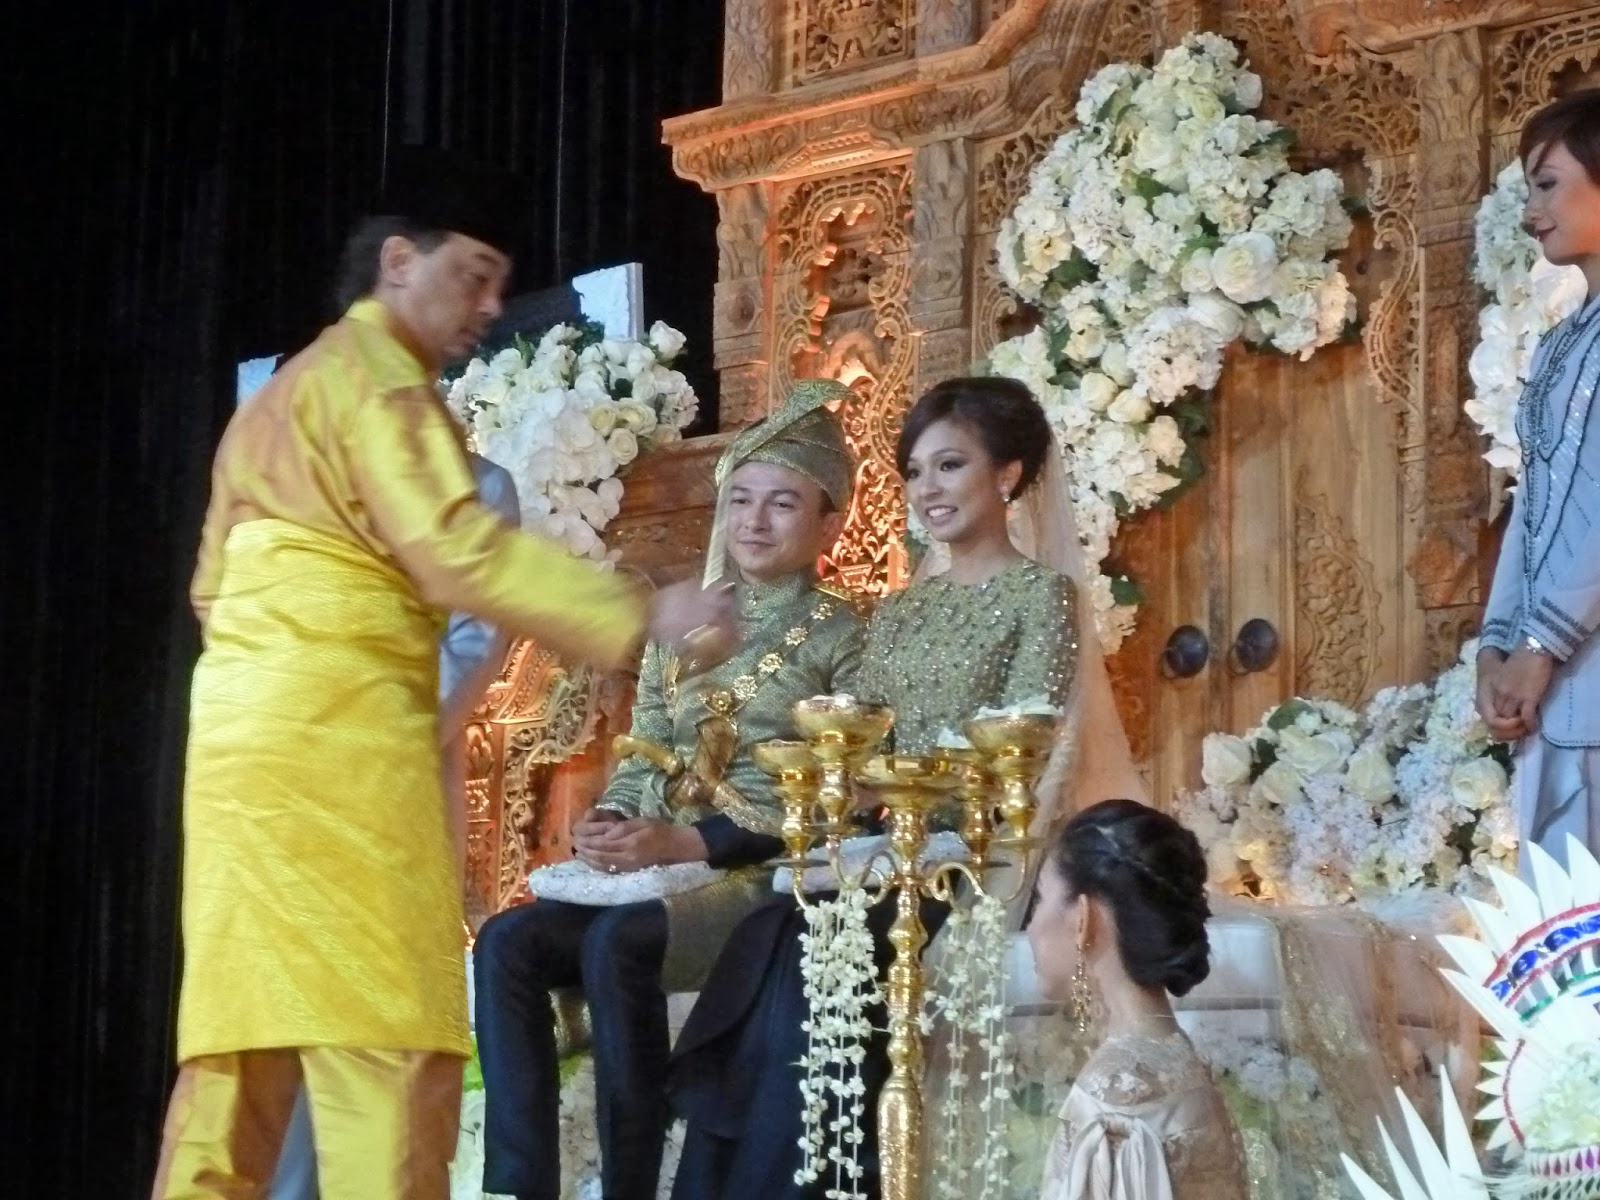 kee hua chee live part 2 the wedding of the year was